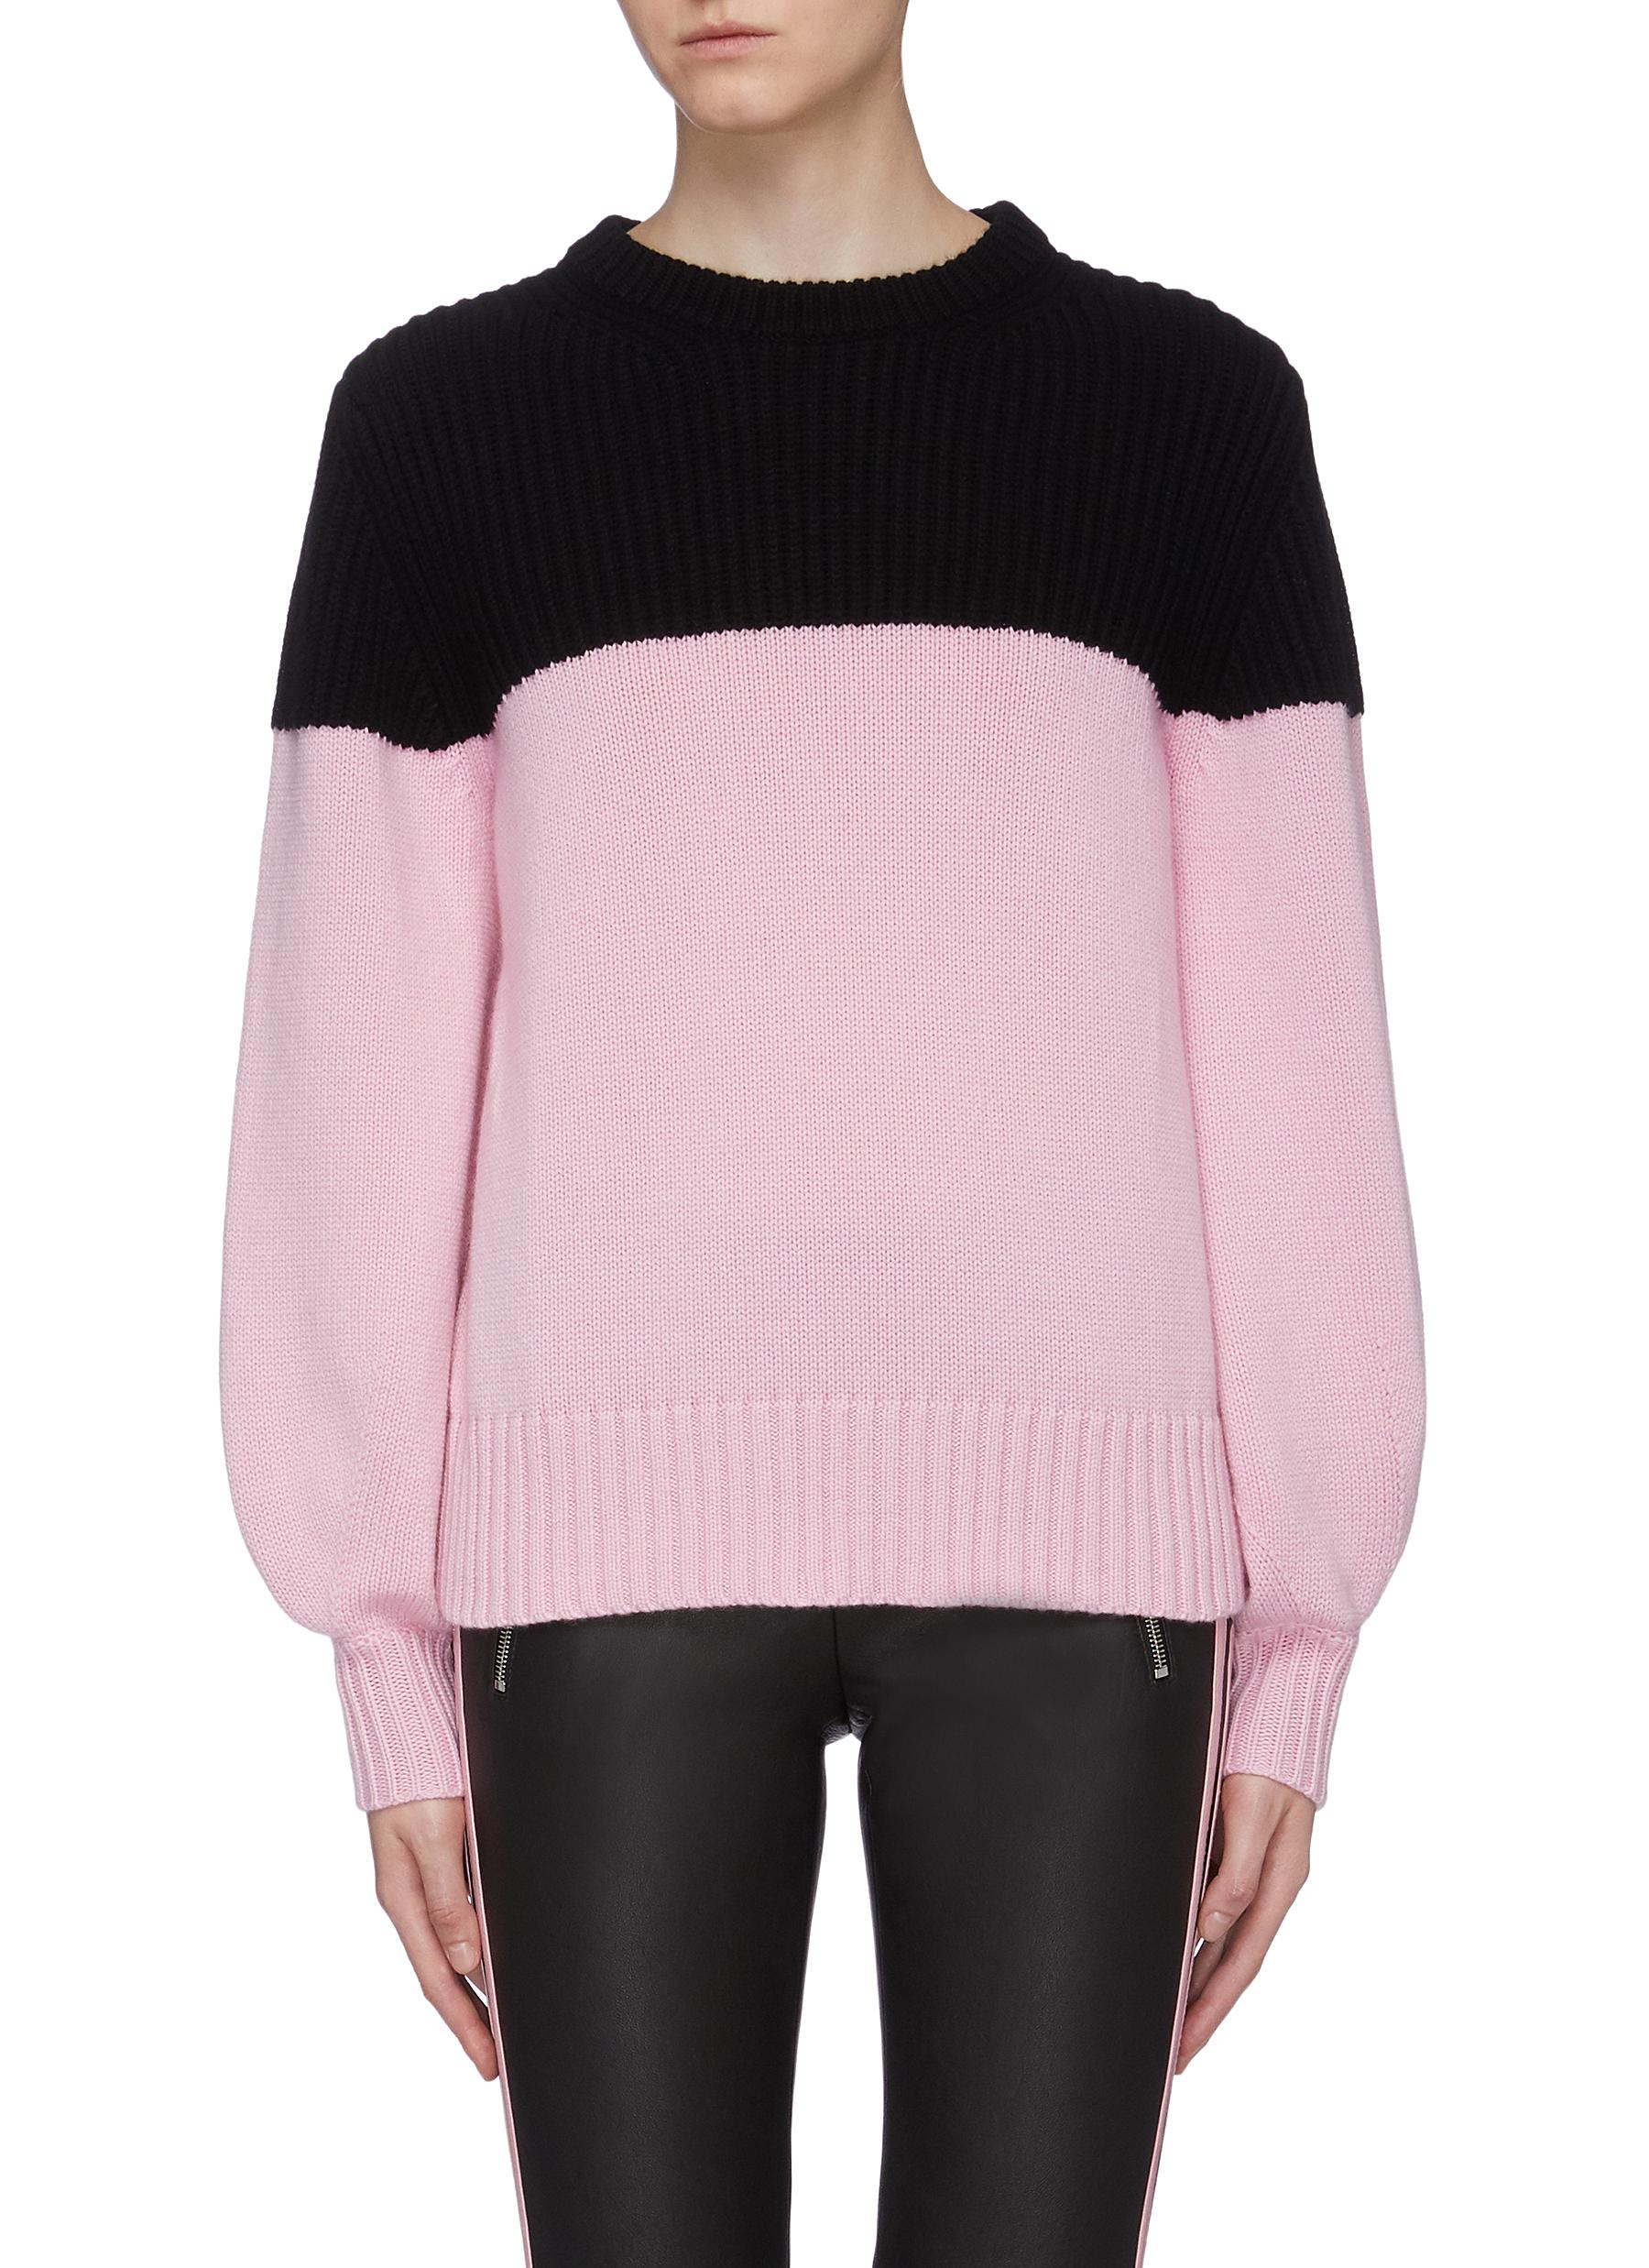 Colourblock rib knit panel cashmere sweater by Alexander Mcqueen